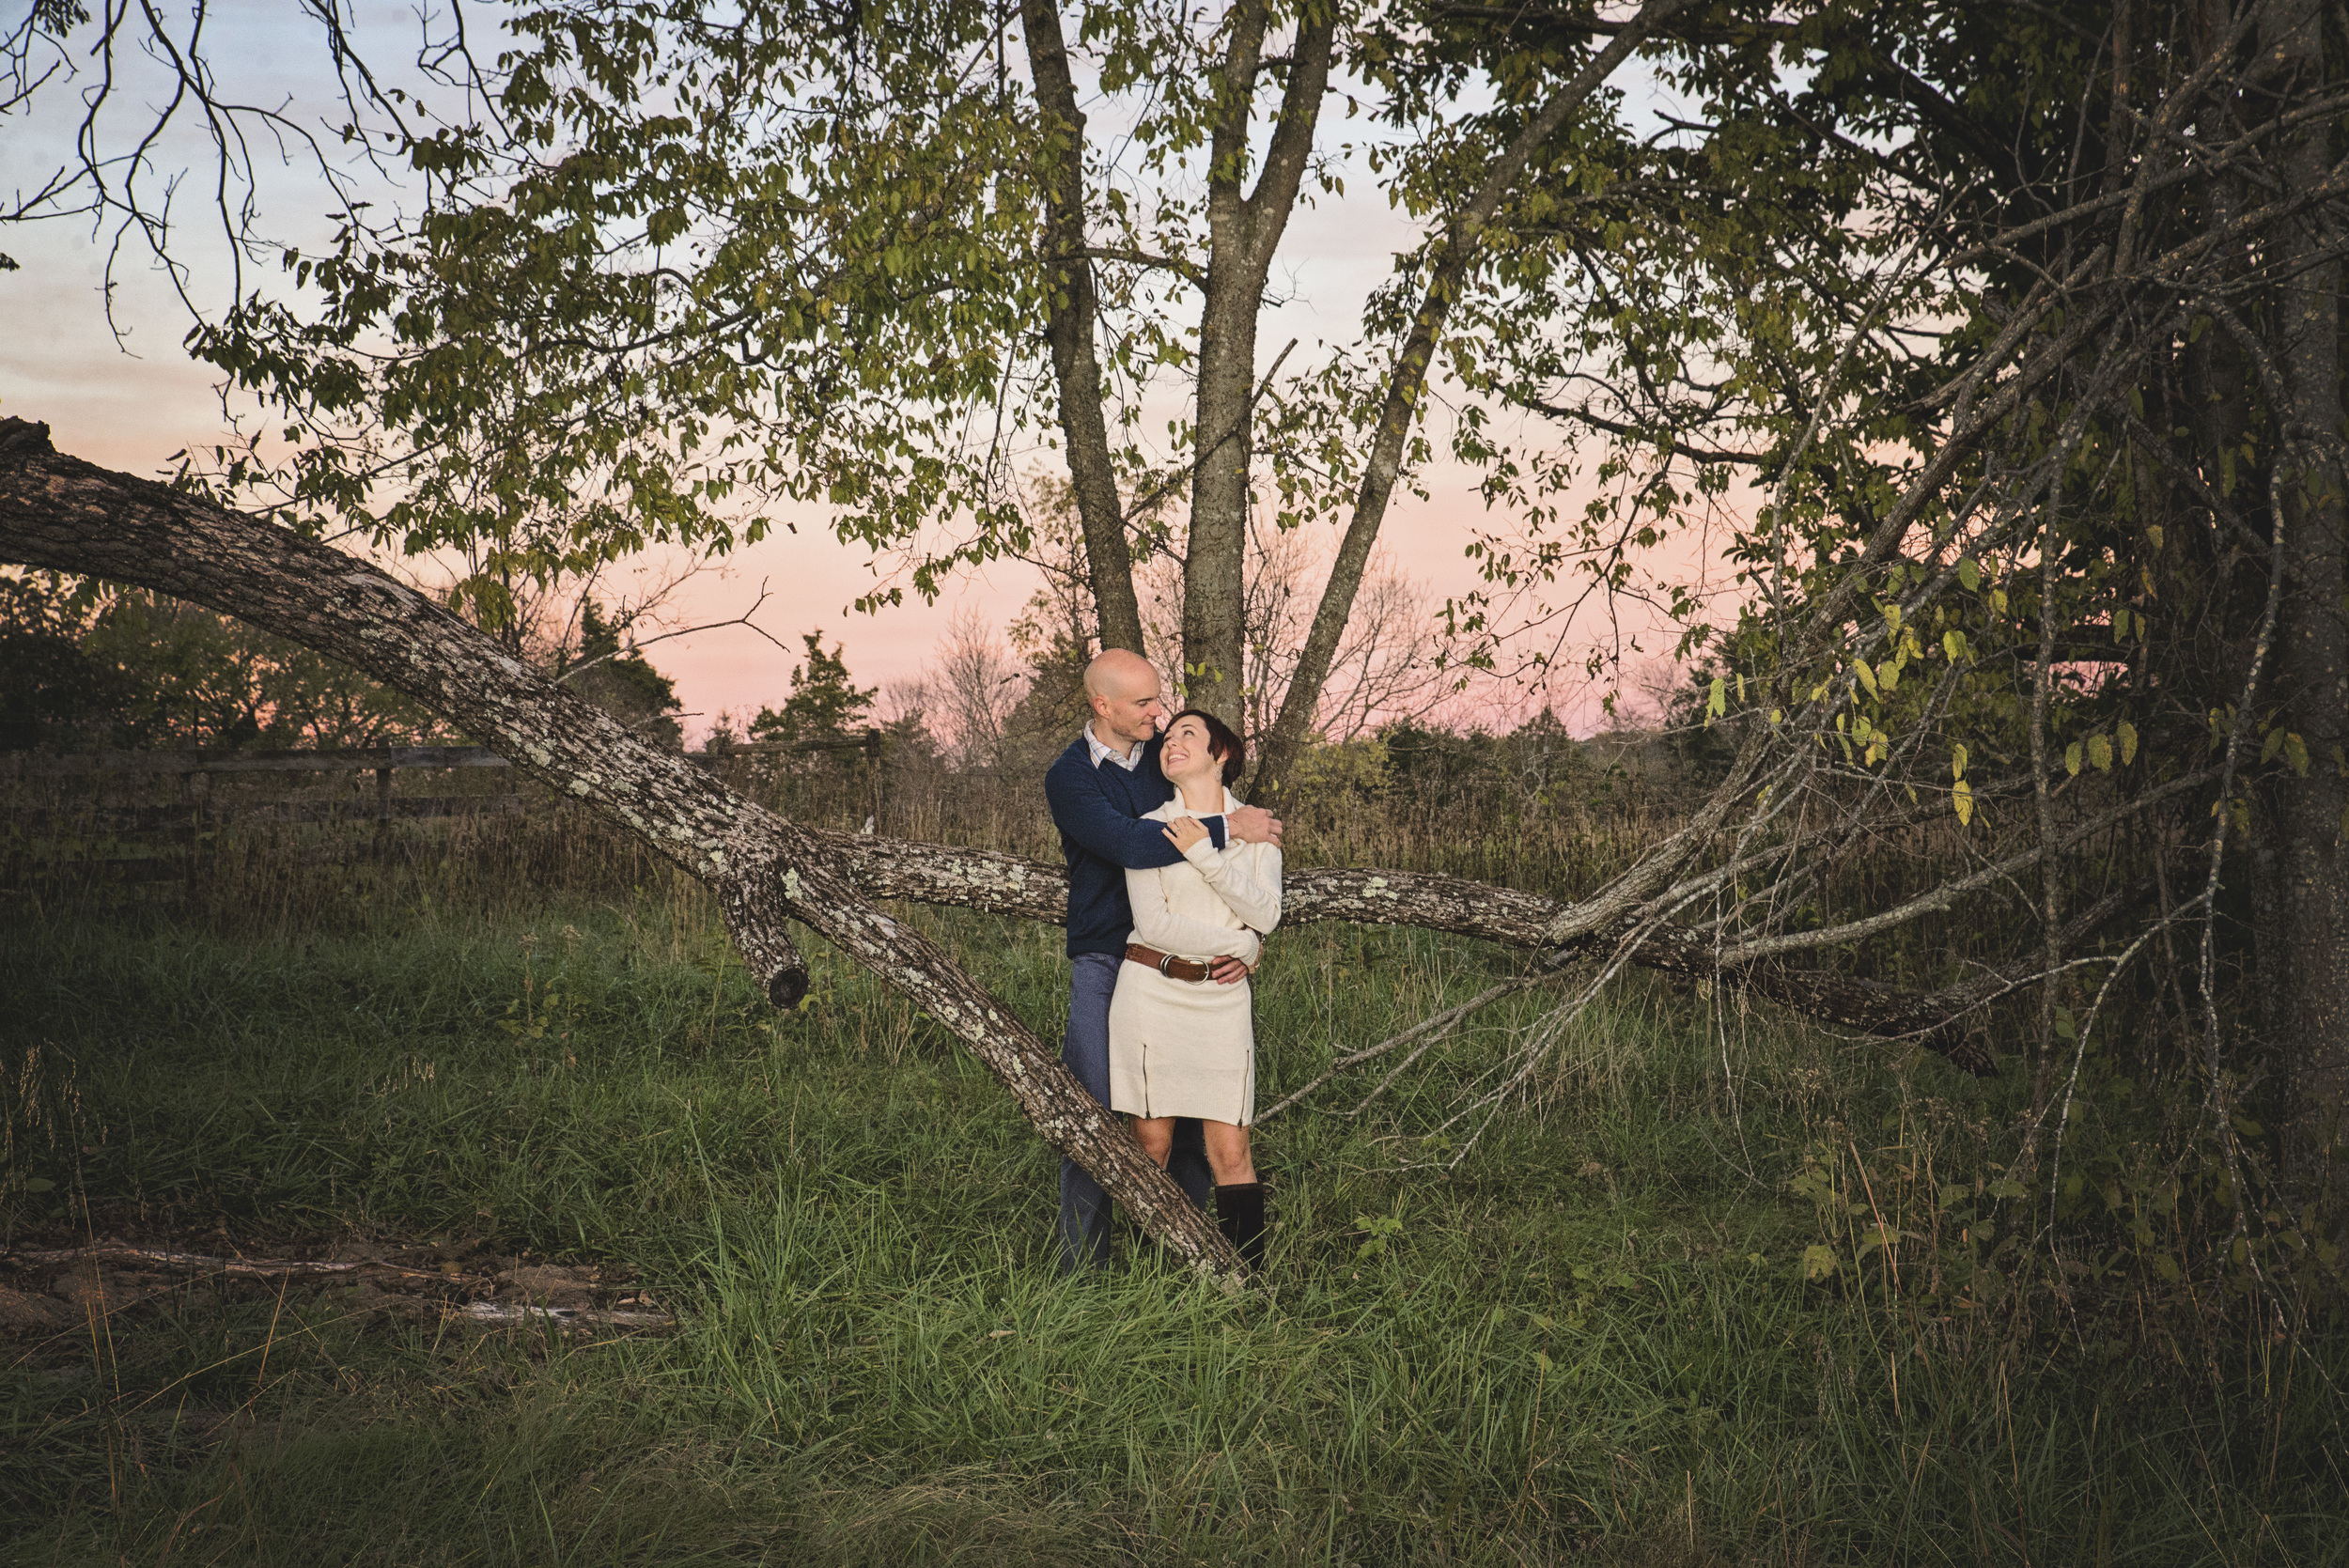 romantic_fall_field_engagement_session_lynchburg_va021.jpg